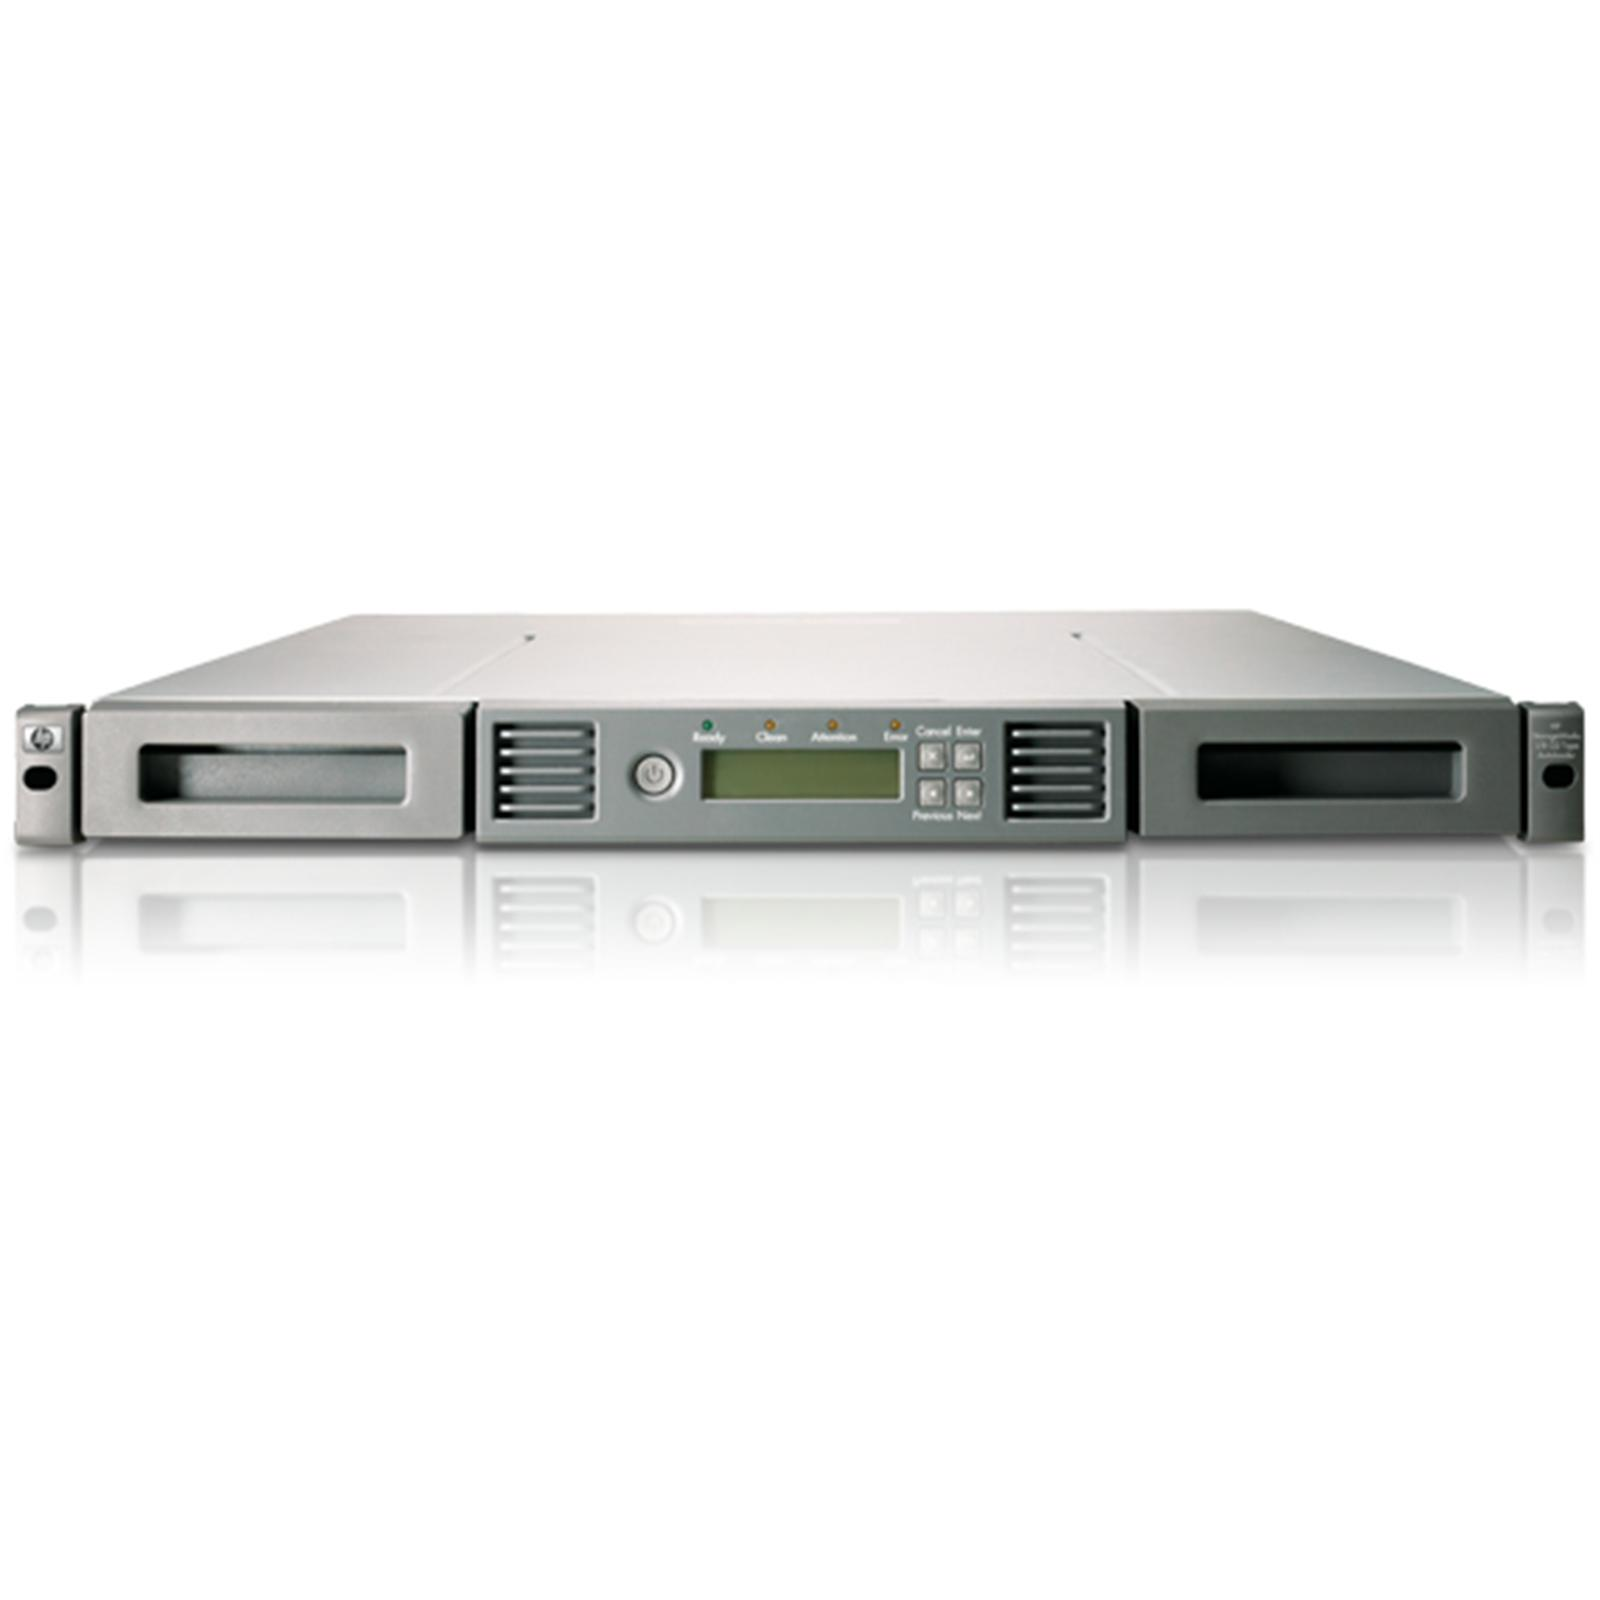 HPE StoreEver 1/8 G2 LTO-7 SAS Autoloader (N7P35A) + 8x HPE StoreEver 1/8 G2 LTO-7 SAS Autoloader (C7977A)